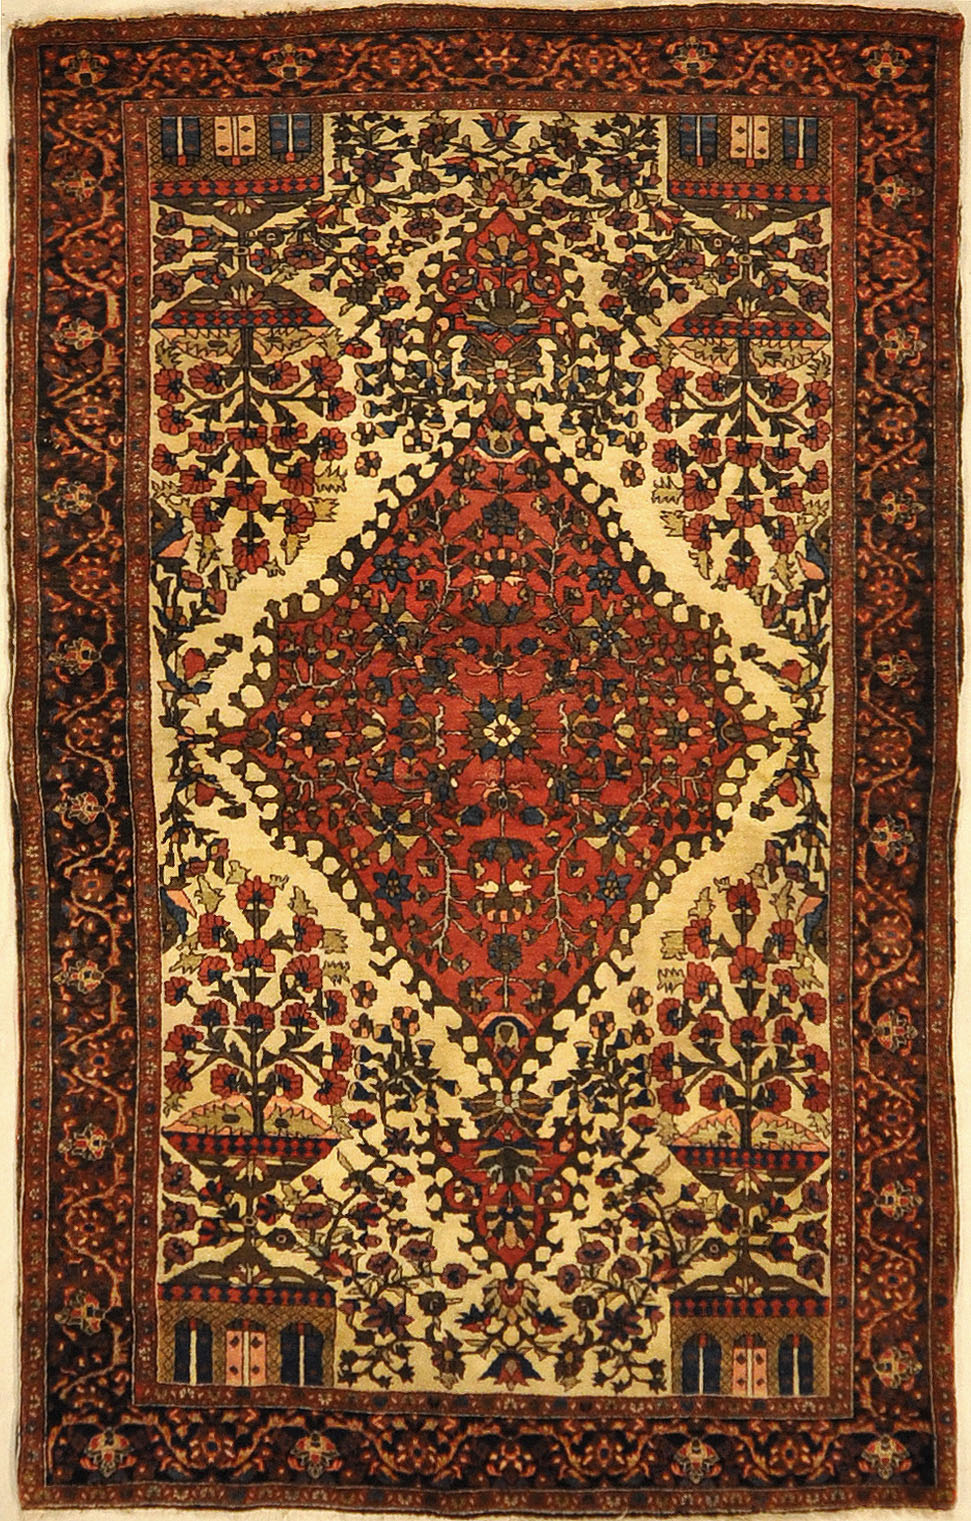 Sarouk Farahan Rug Circa 1880. A piece of genuine authentic antique woven carpet art sold by the Santa Barbara Design Center, Rugs and More.